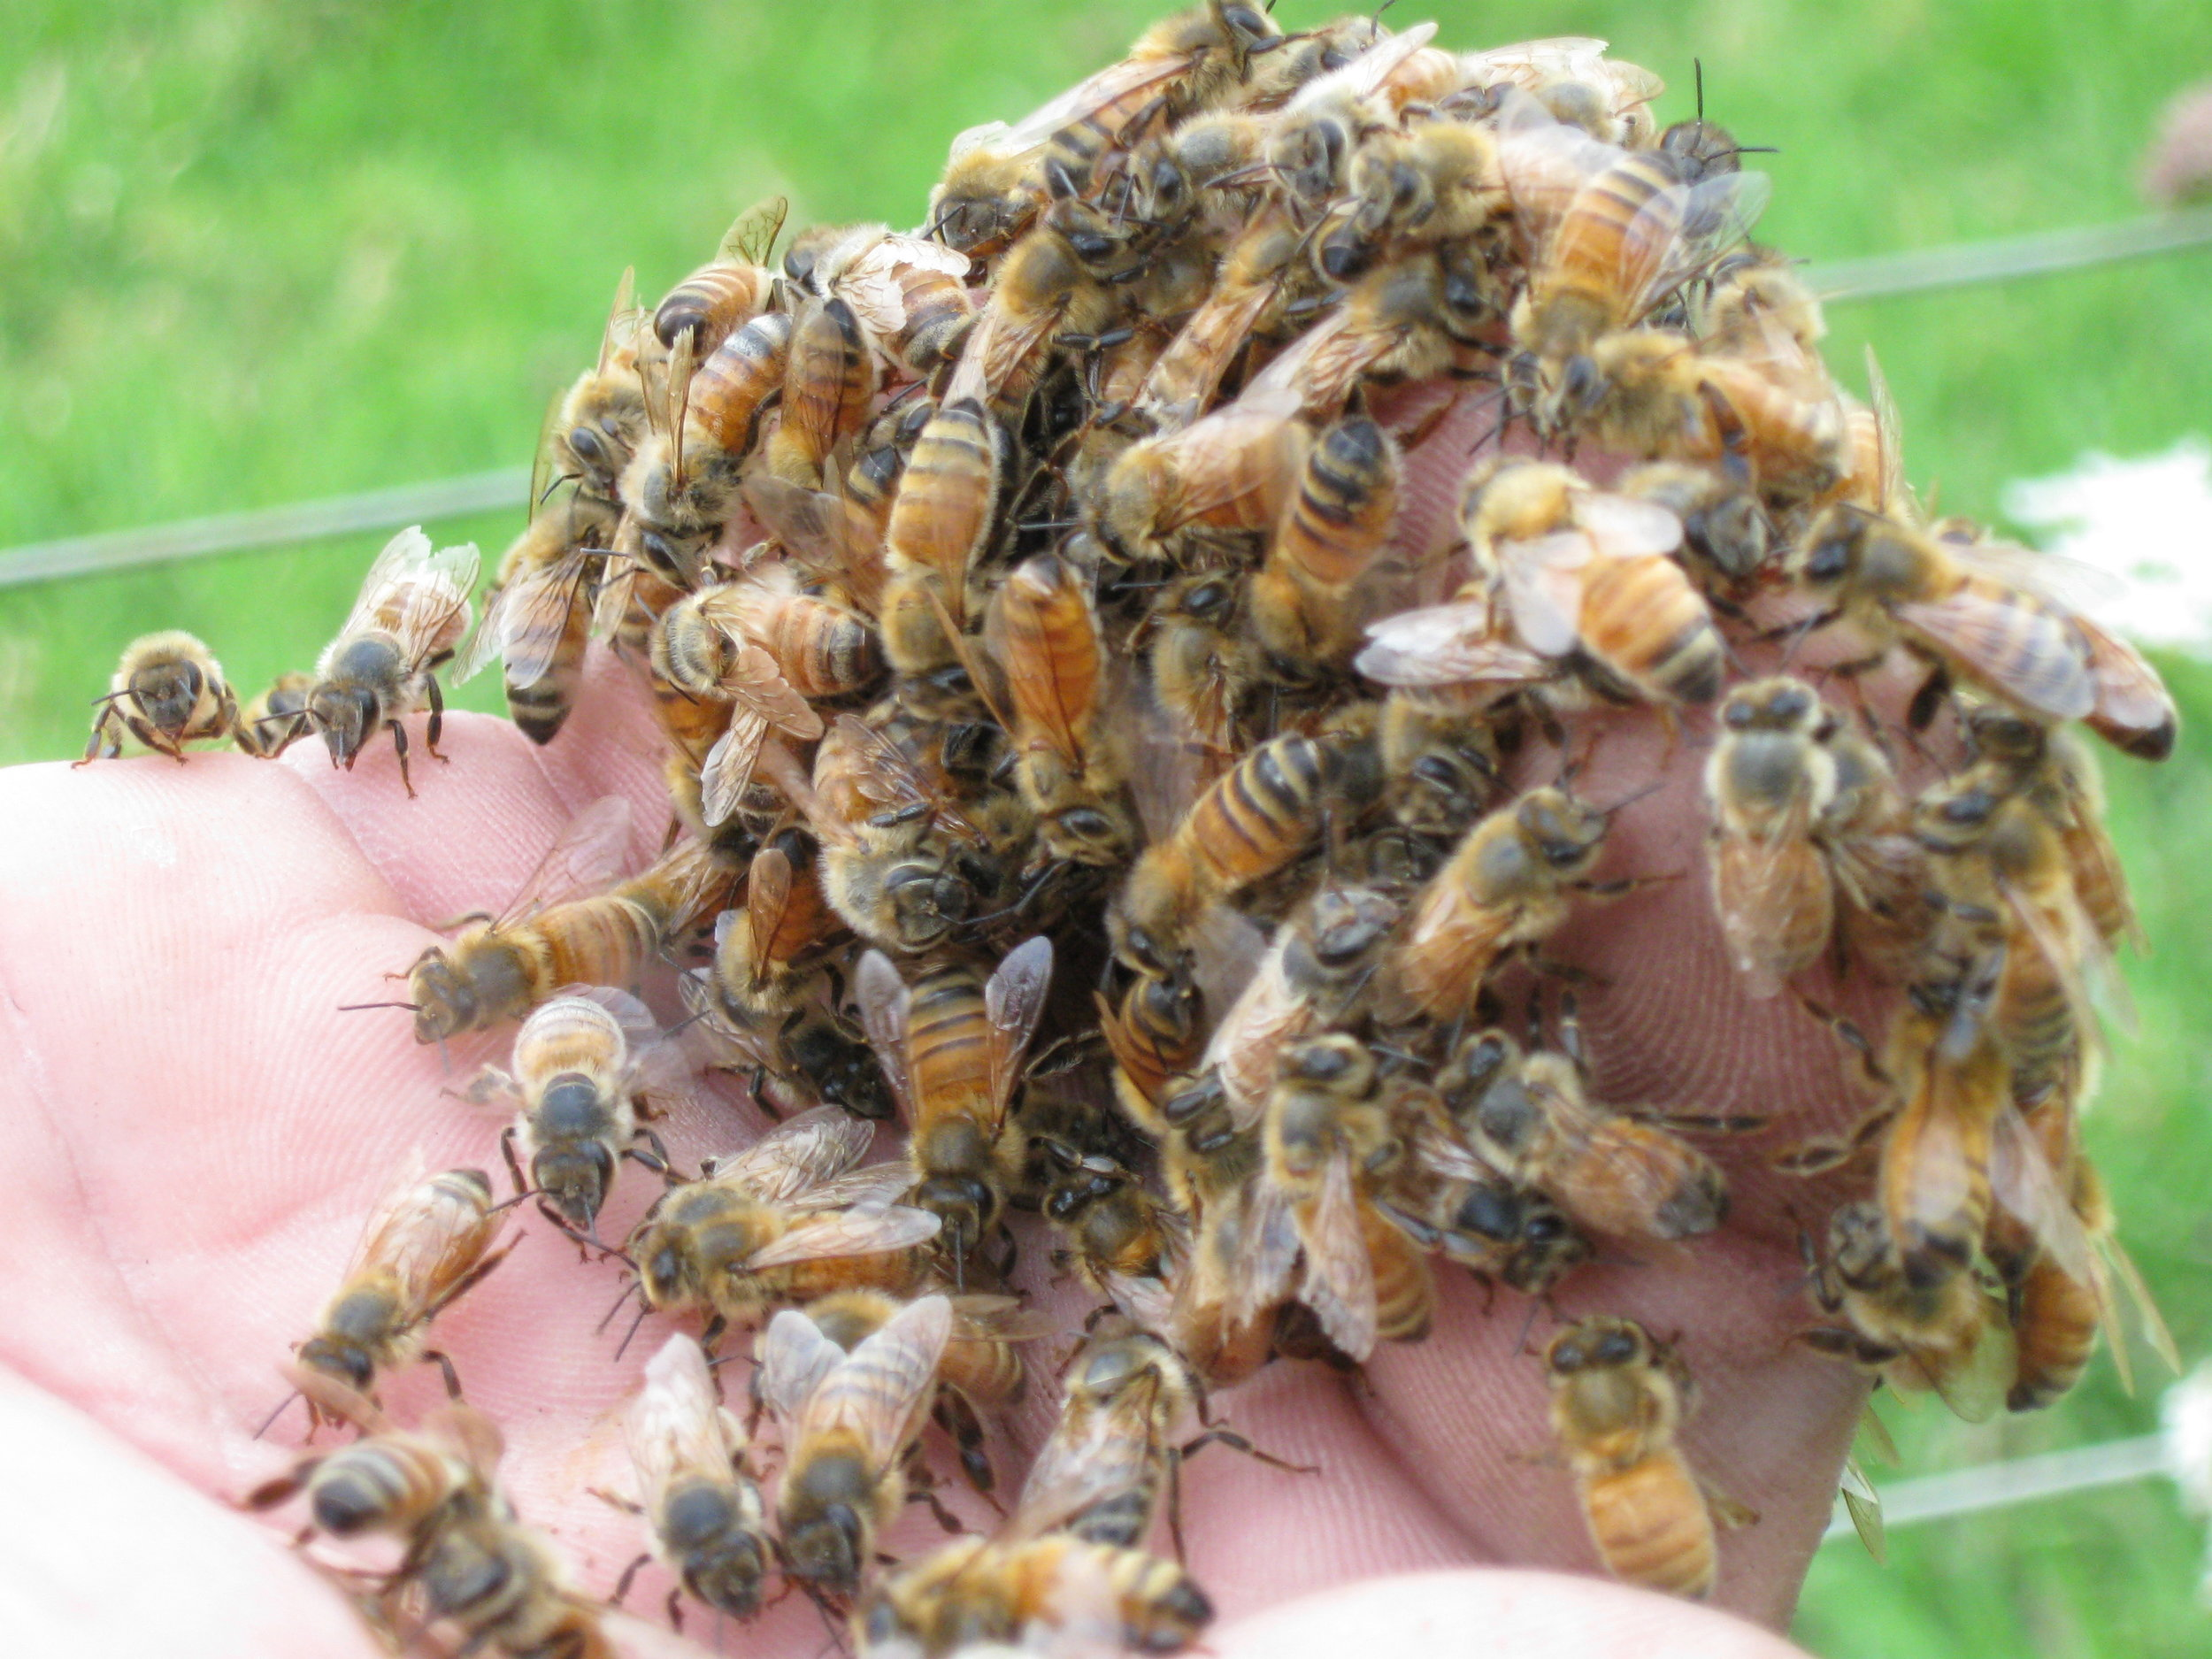 Handling some bees with care